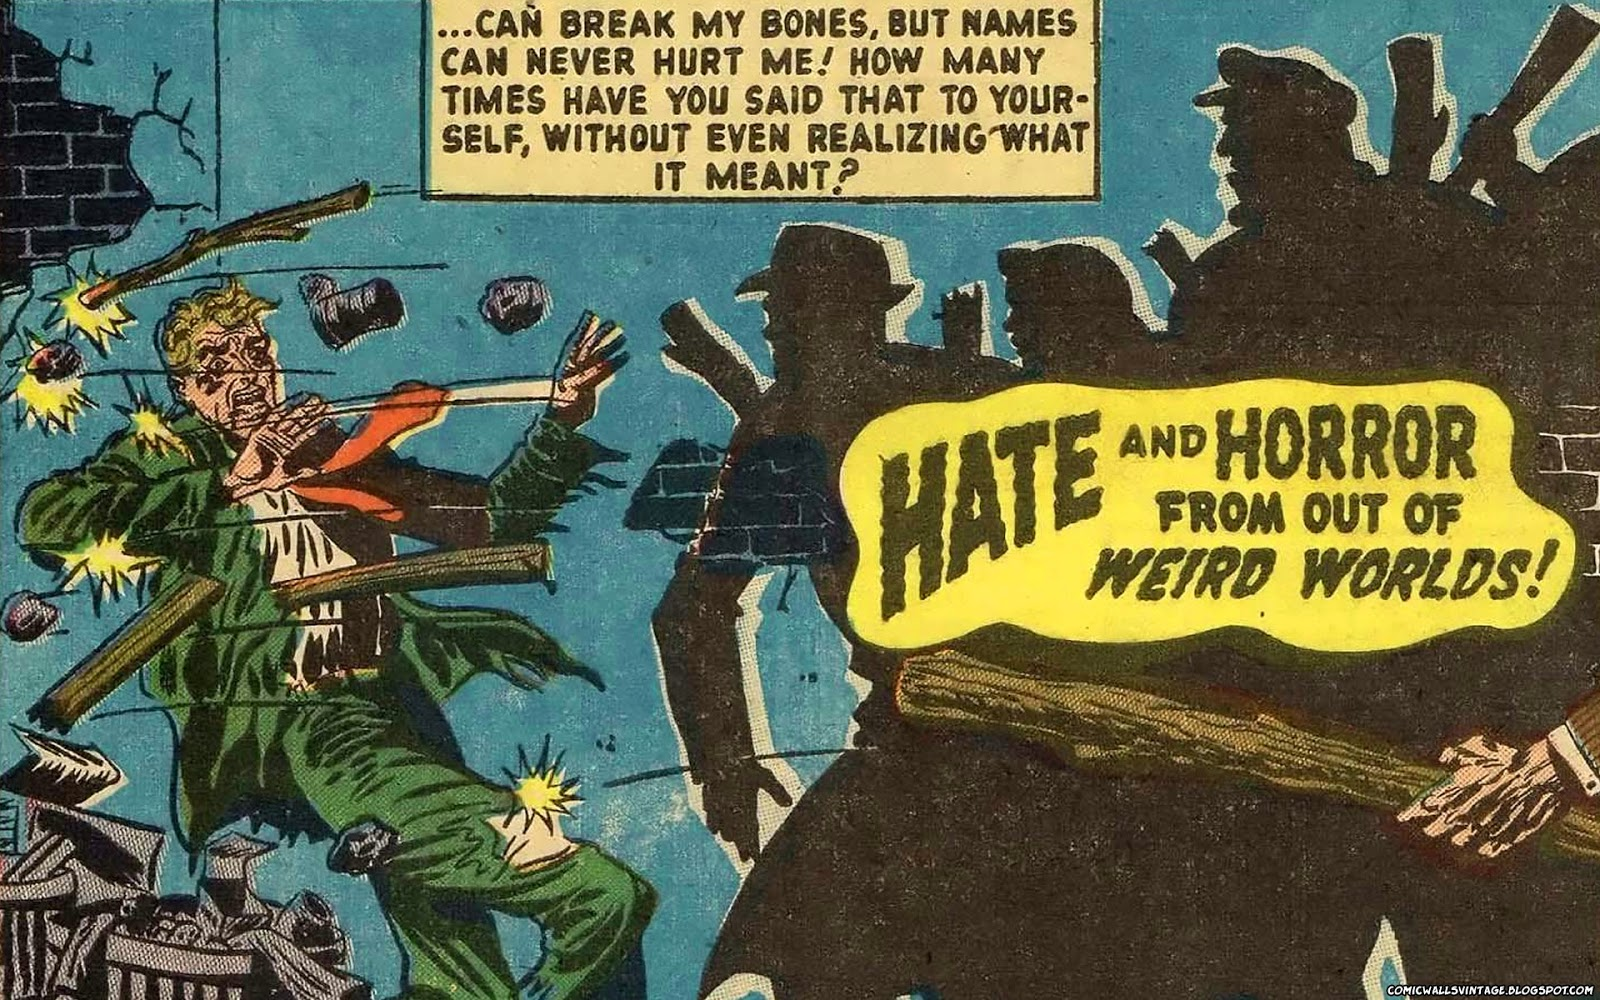 Comic Wallpapers Vintage Hate And Horror From Out Of Weird Worlds